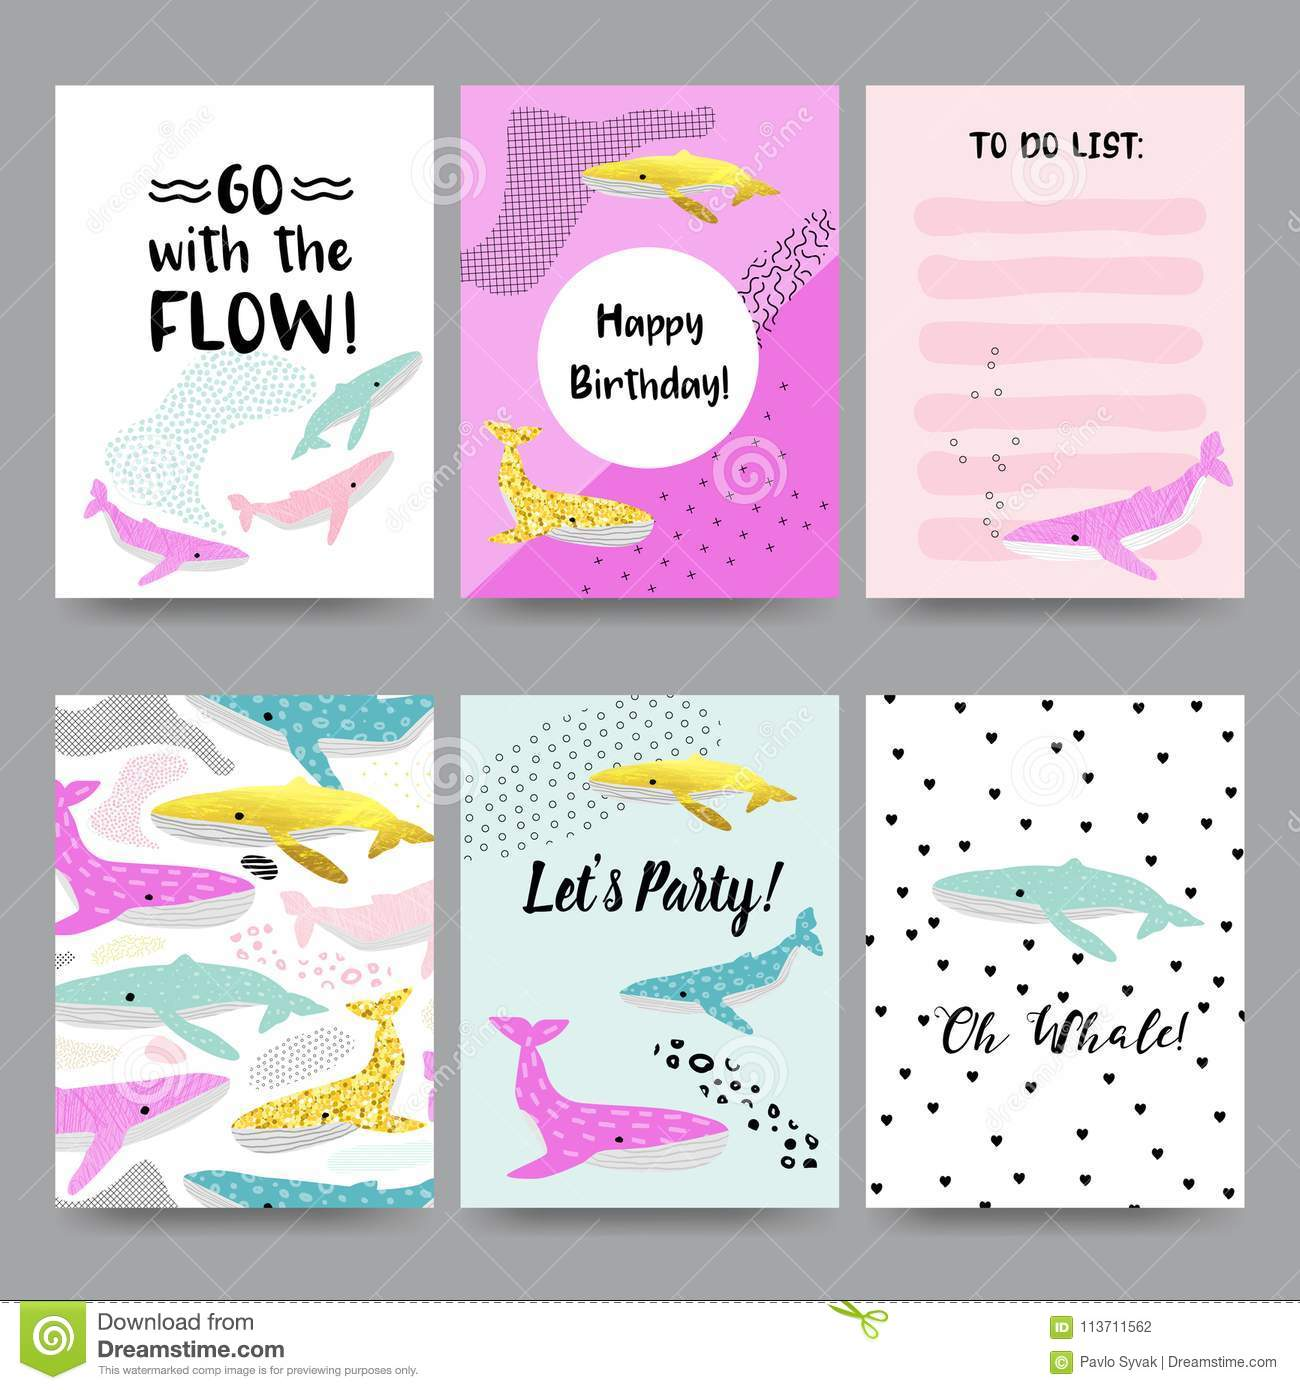 Happy Birthday Invitation Templates With Underwater Creatures Childish Marine